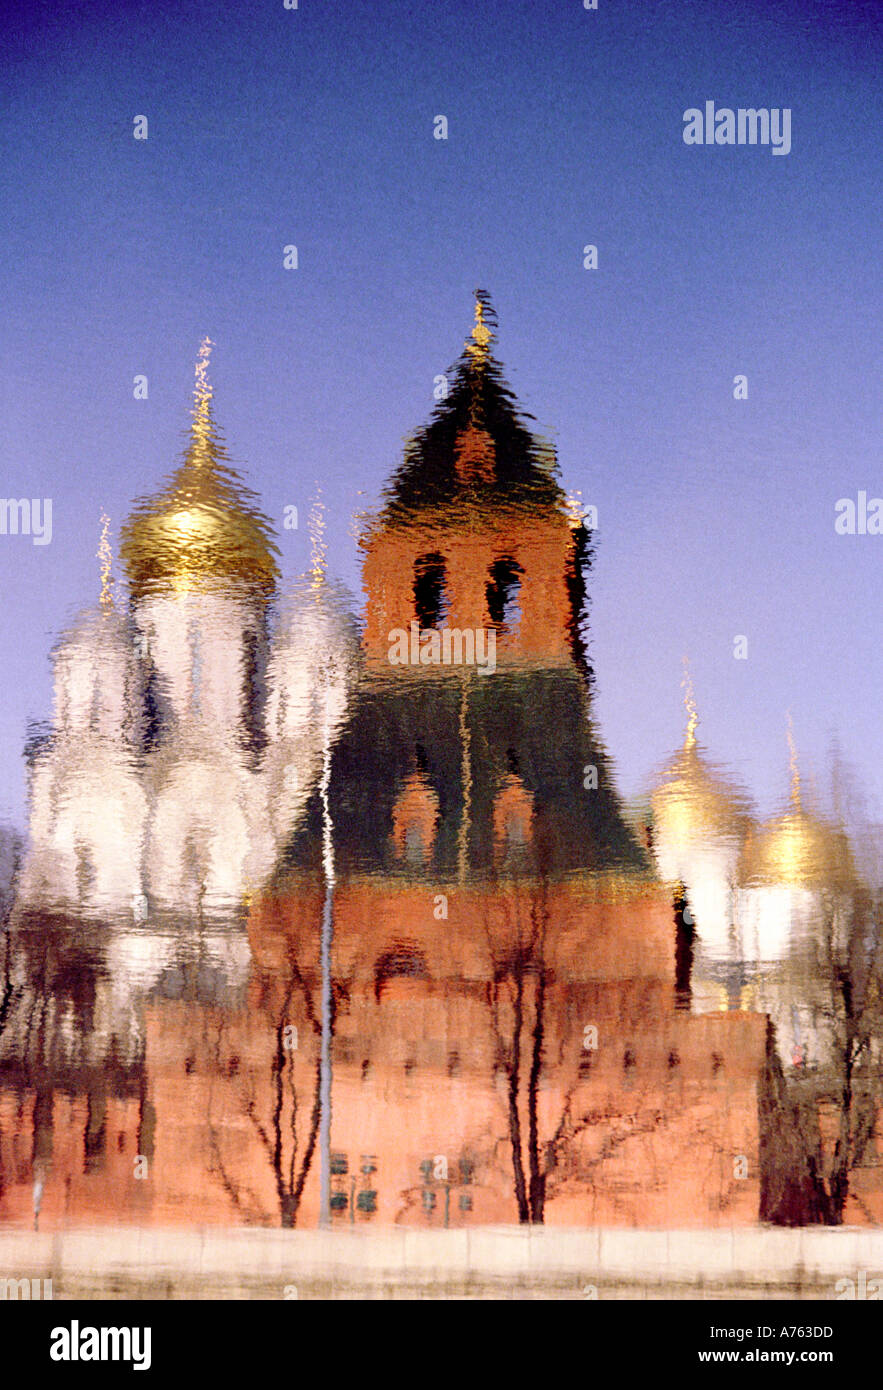 Moscow reflections of Kremlin complex - Stock Image